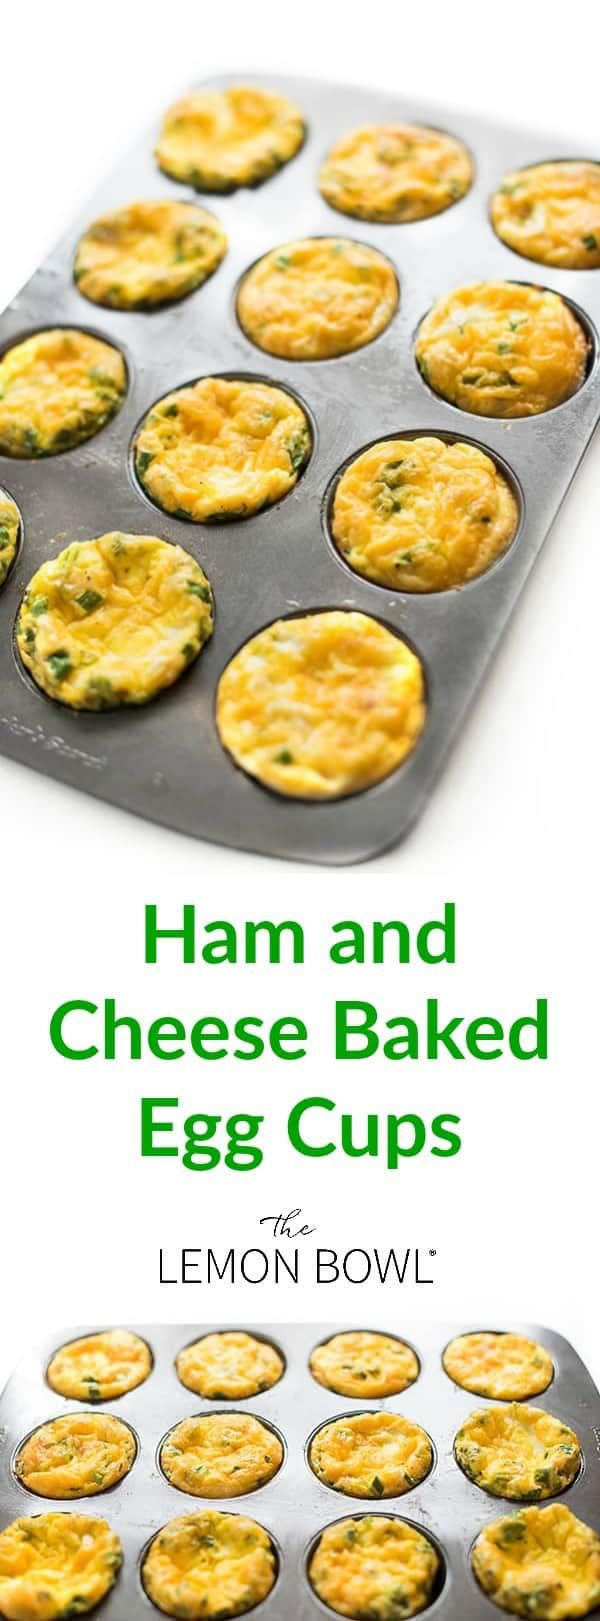 Ham and cheese egg muffins are the ideal, protein-packed breakfast that can be made ahead and quickly reheated on busy weekday mornings.